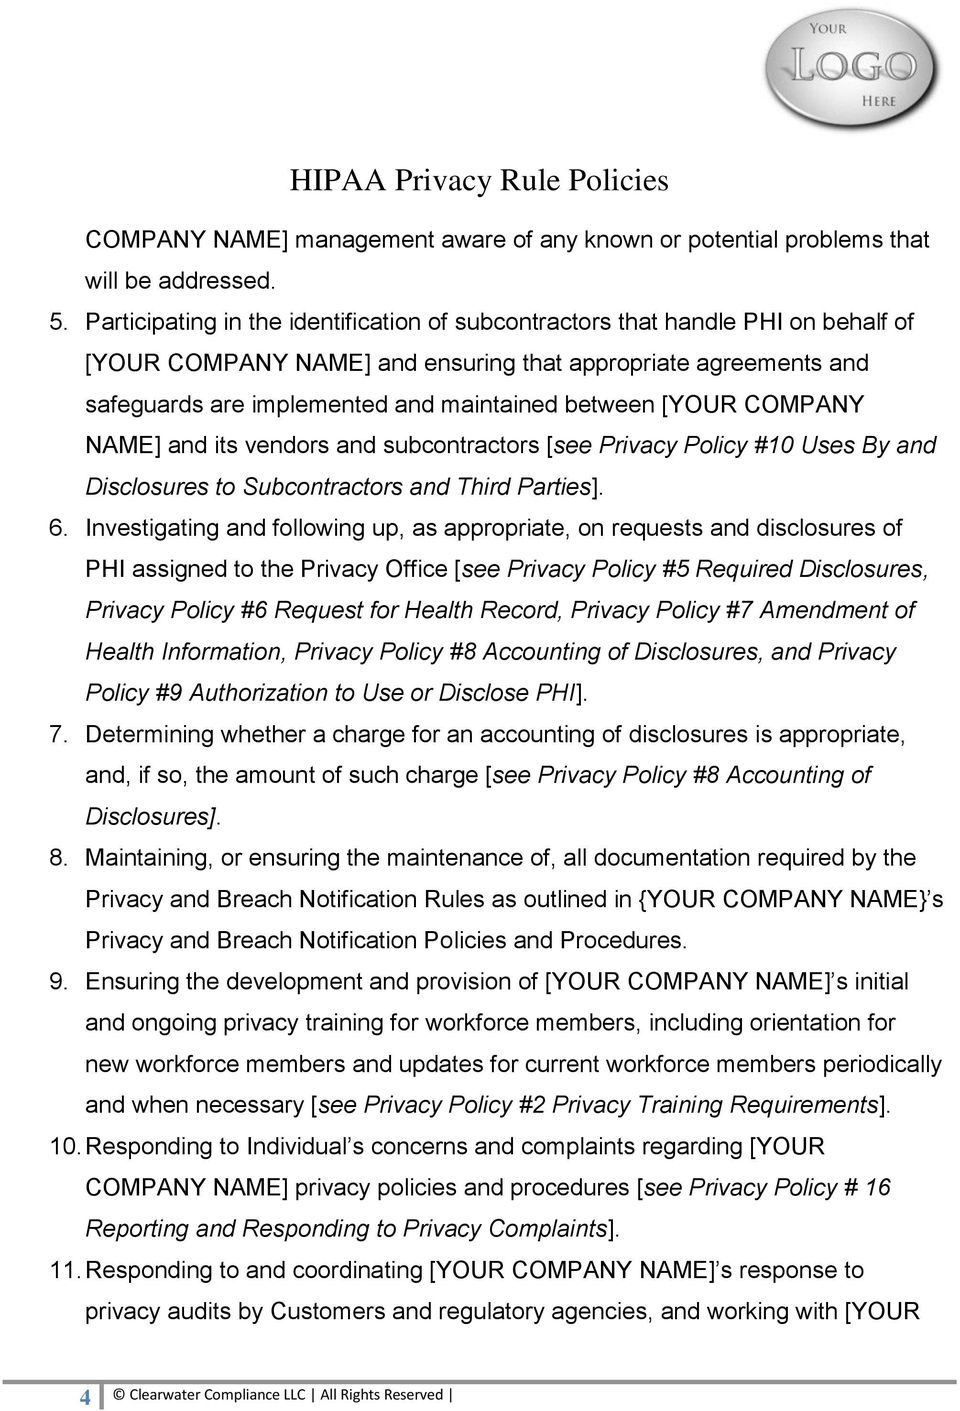 [YOUR COMPANY NAME] and its vendors and subcontractors [see Privacy Policy #10 Uses By and Disclosures to Subcontractors and Third Parties]. 6.